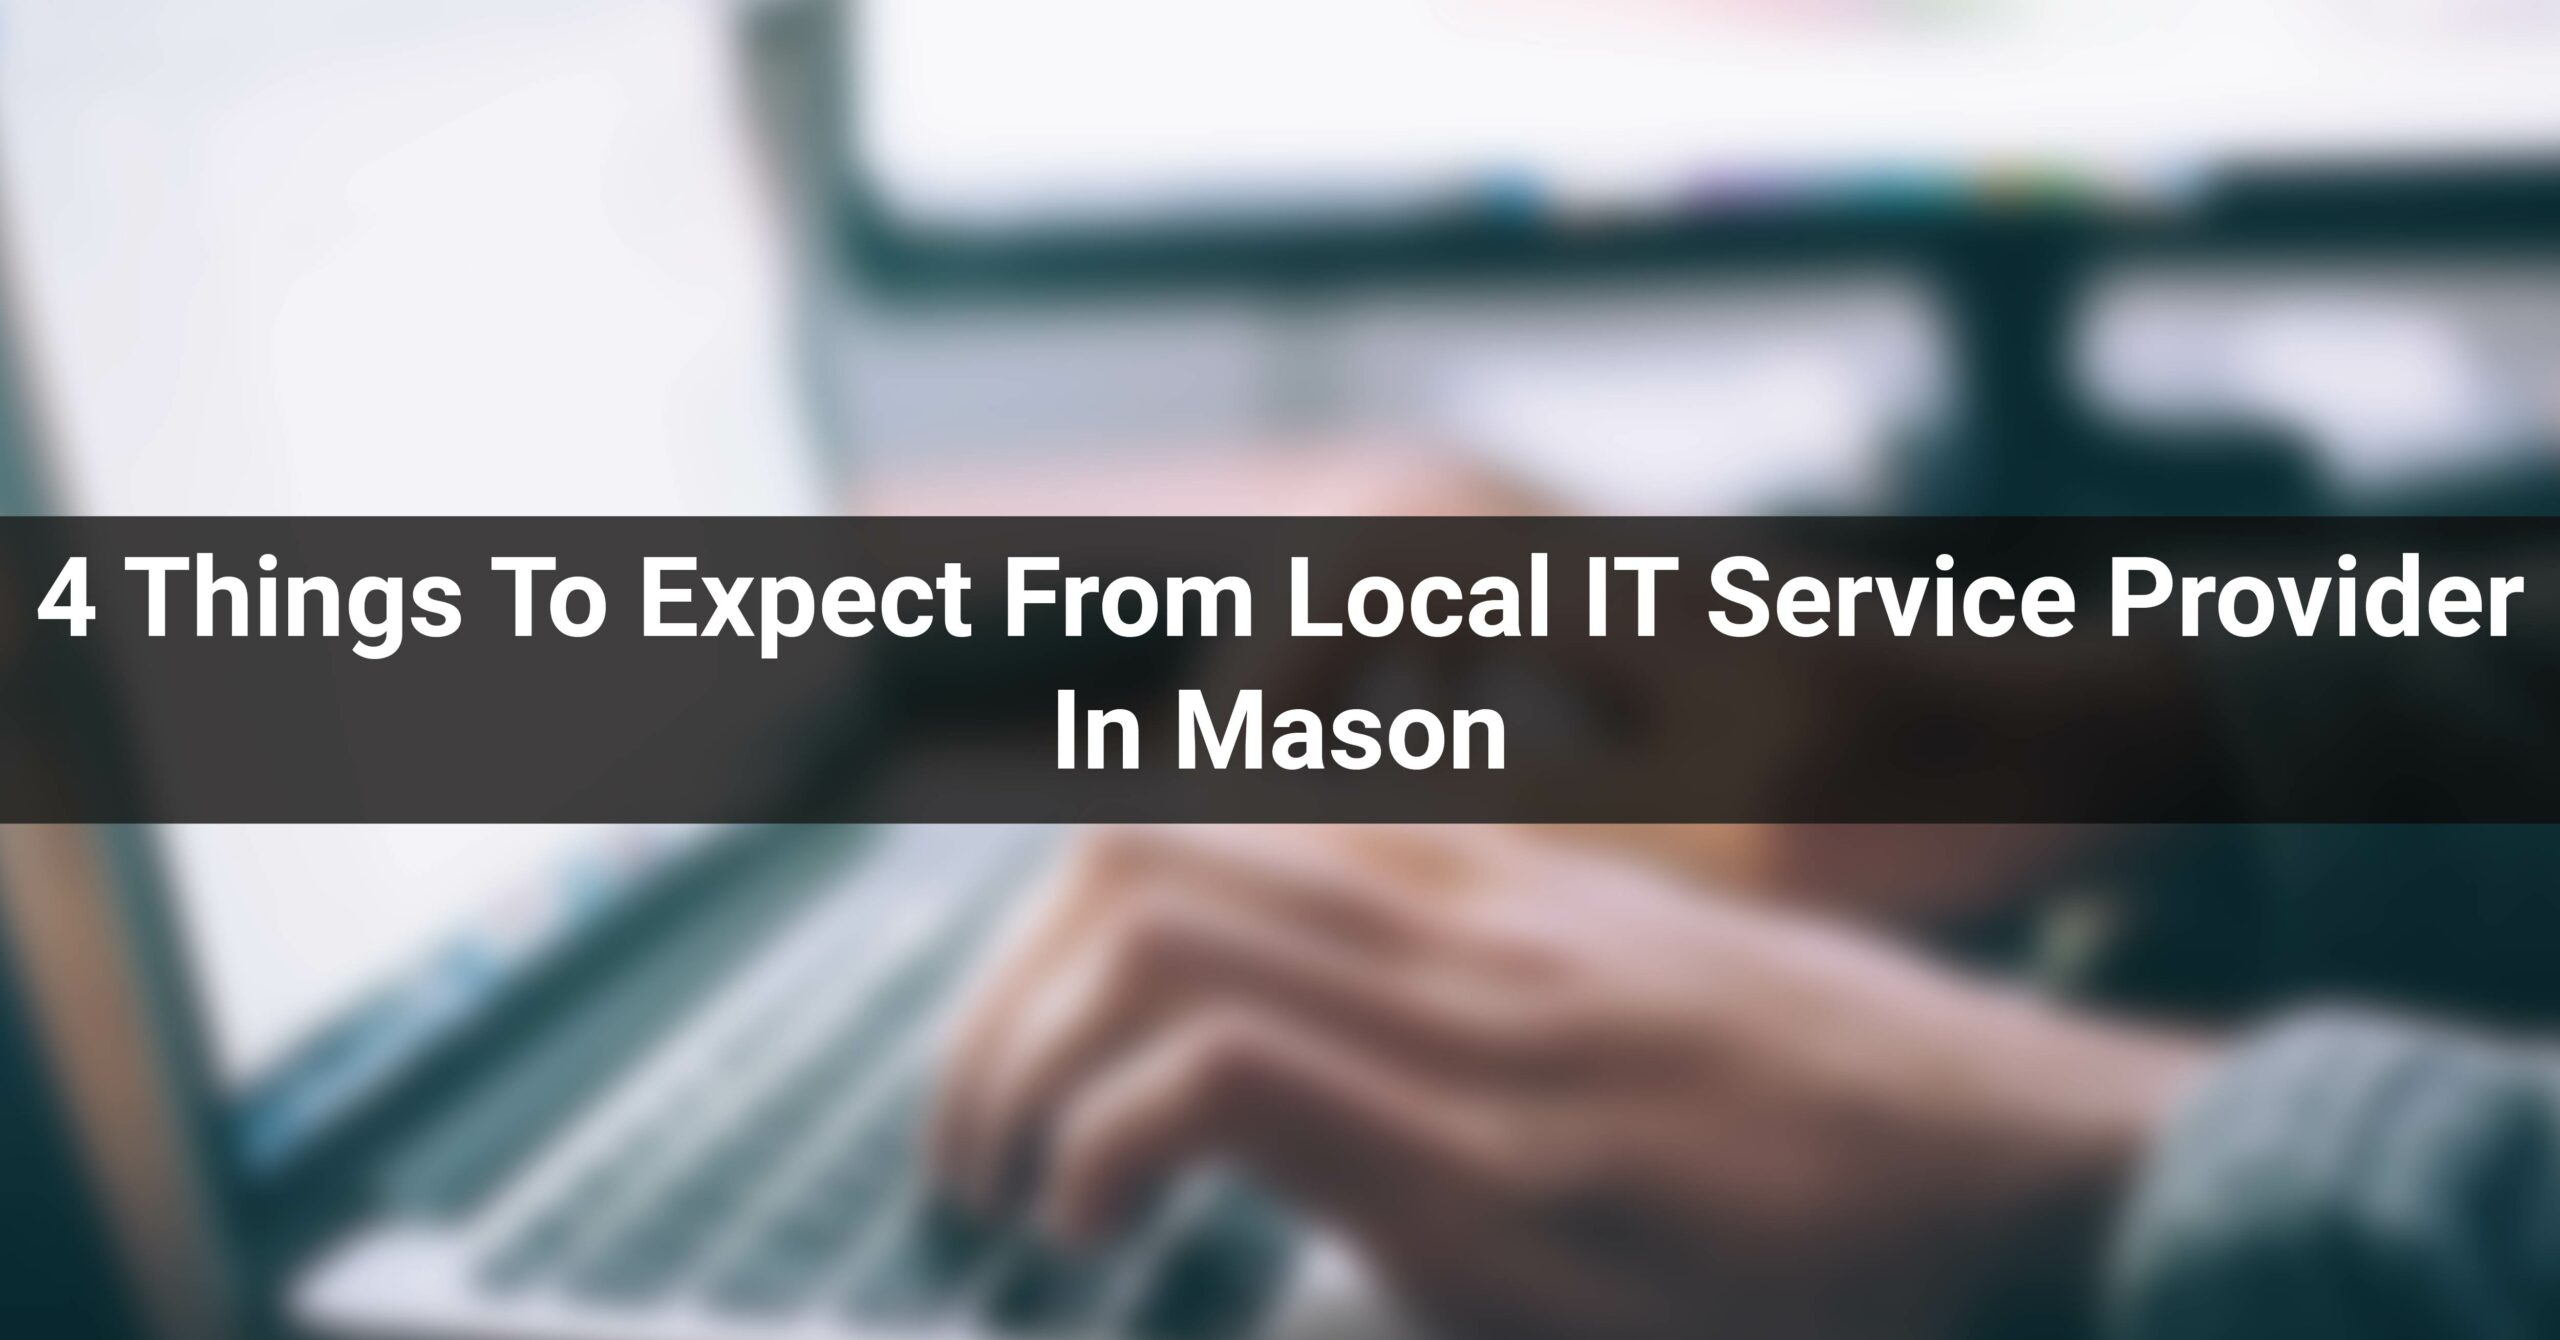 4 Things To Expect From Local IT Service Provider In Mason